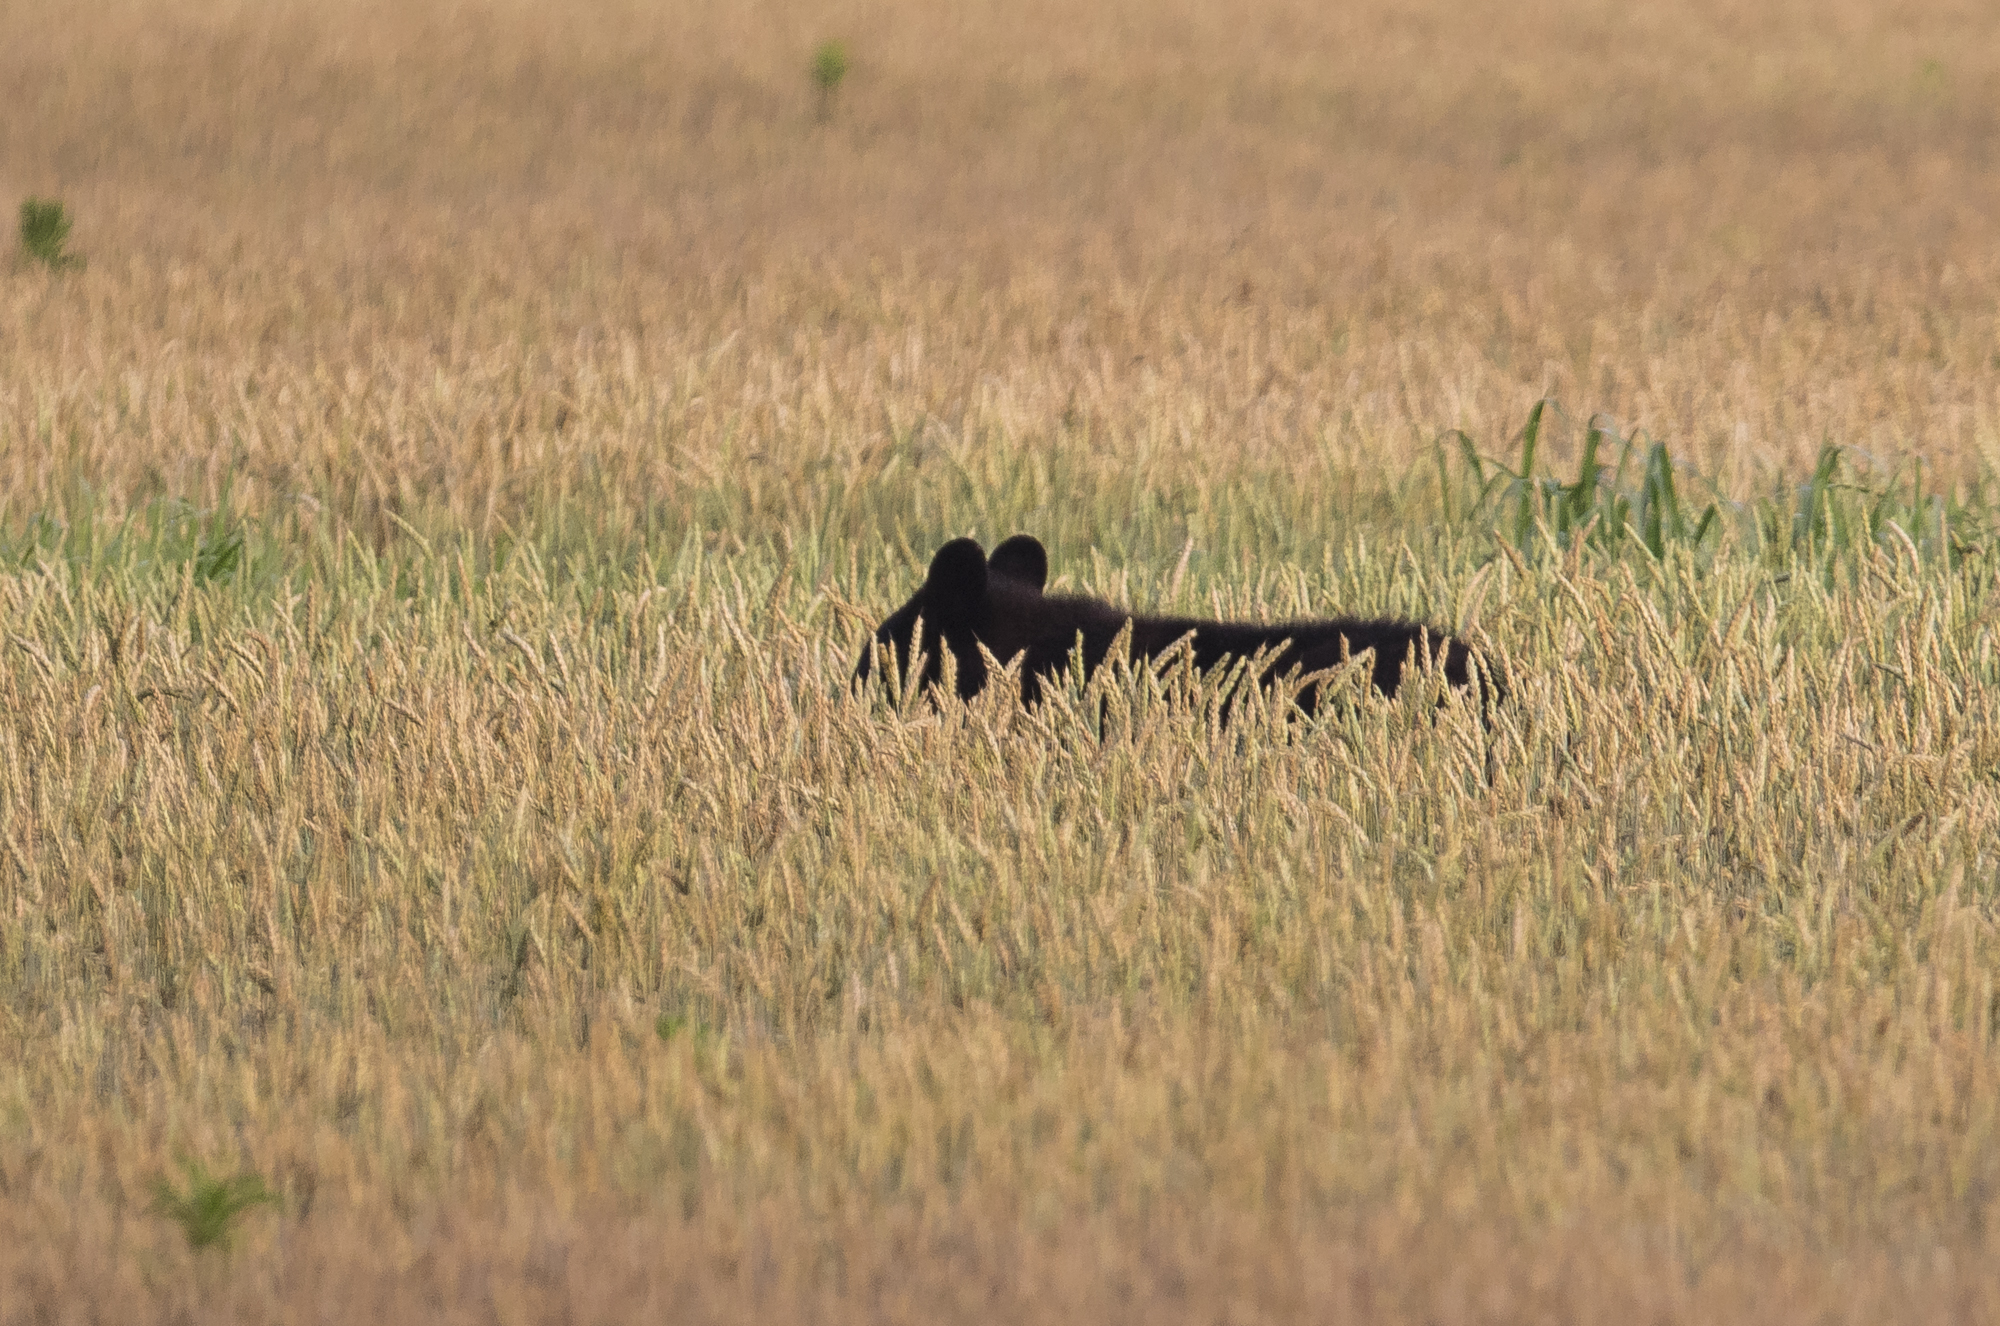 Black bear in wheat field